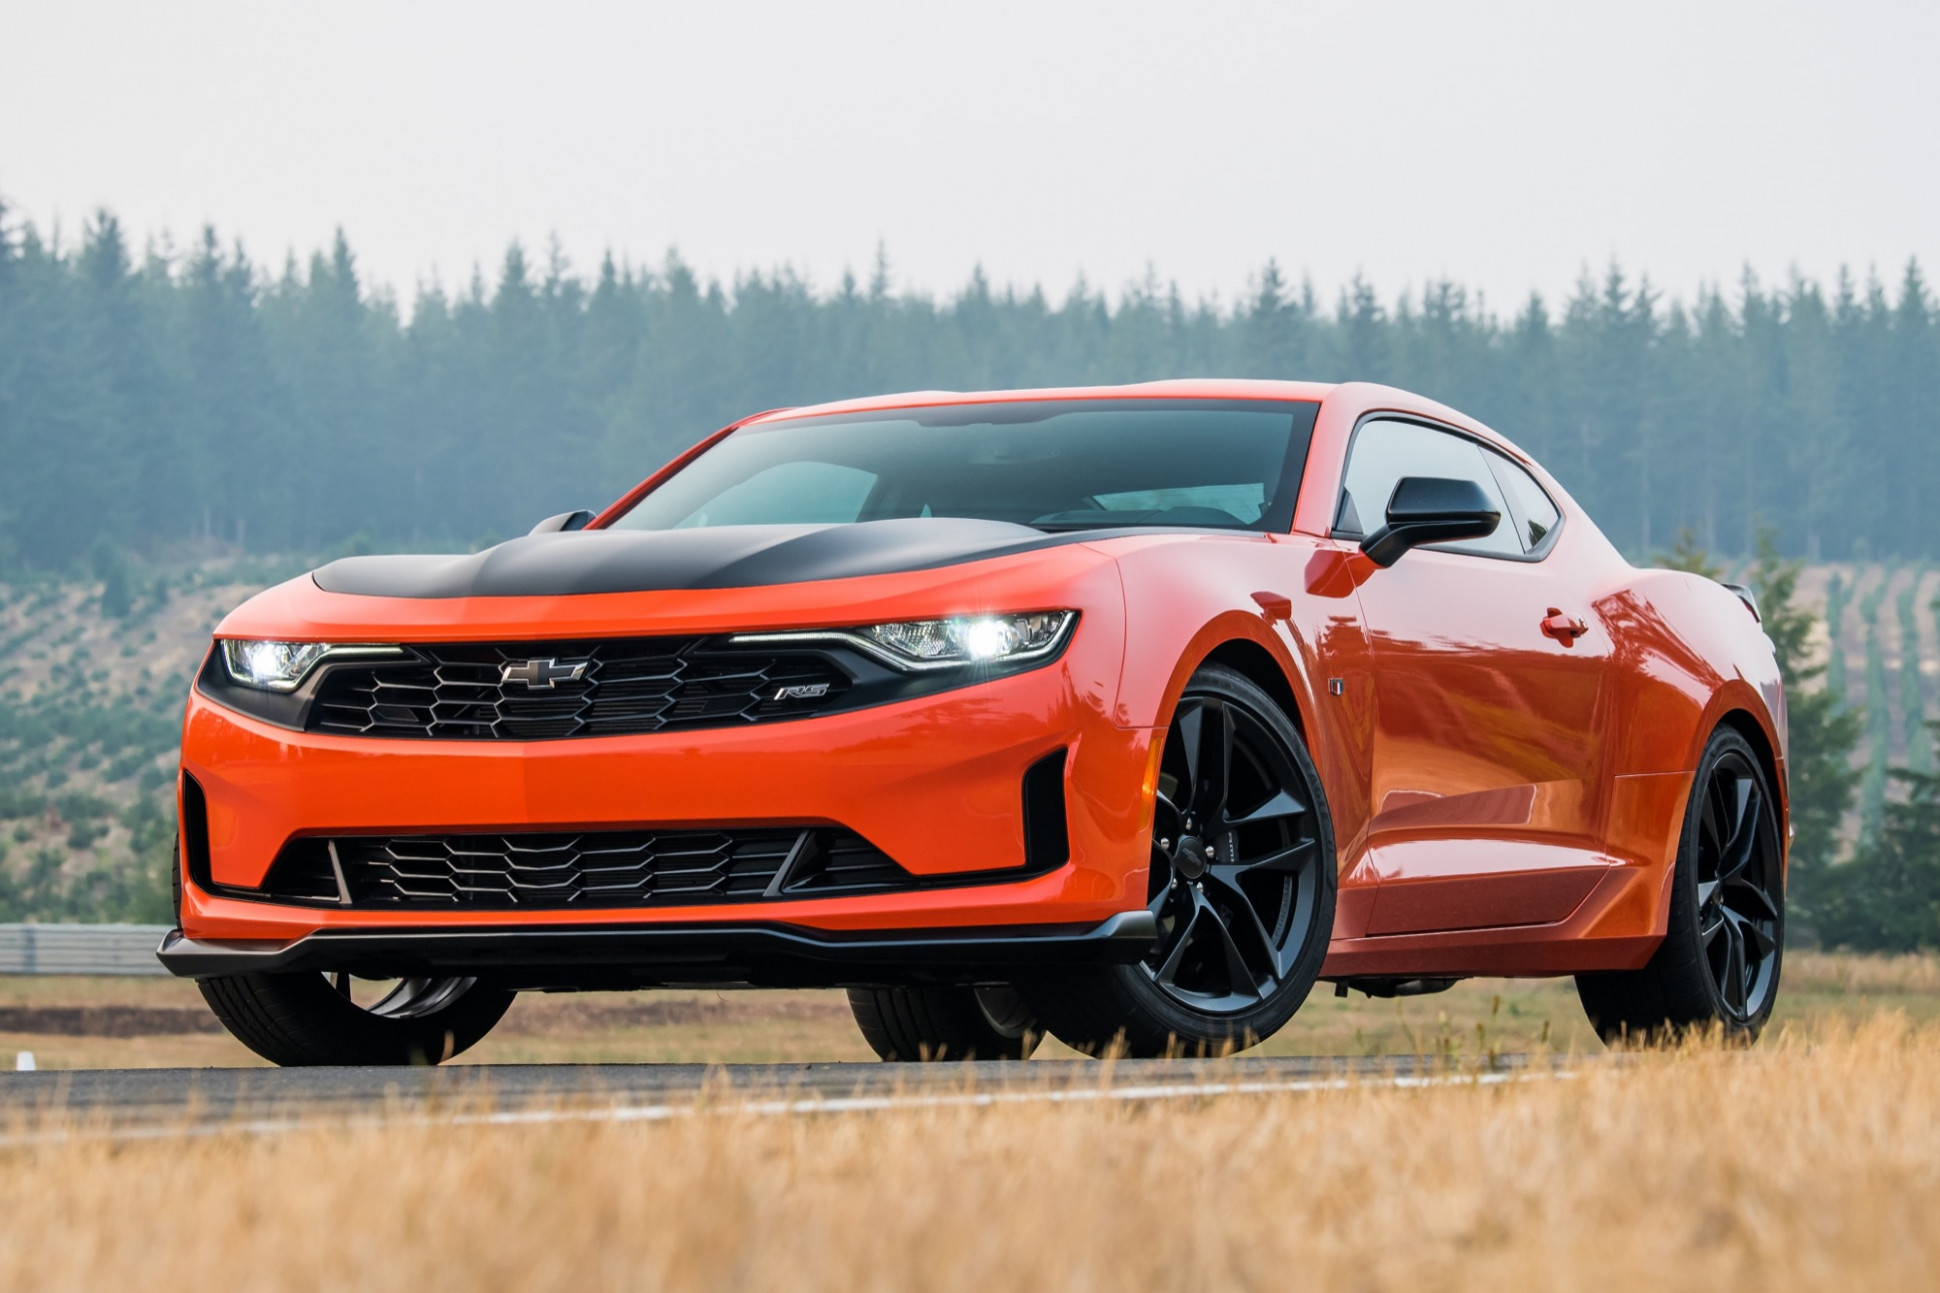 Price Chevrolet Camaro 2022 Pictures